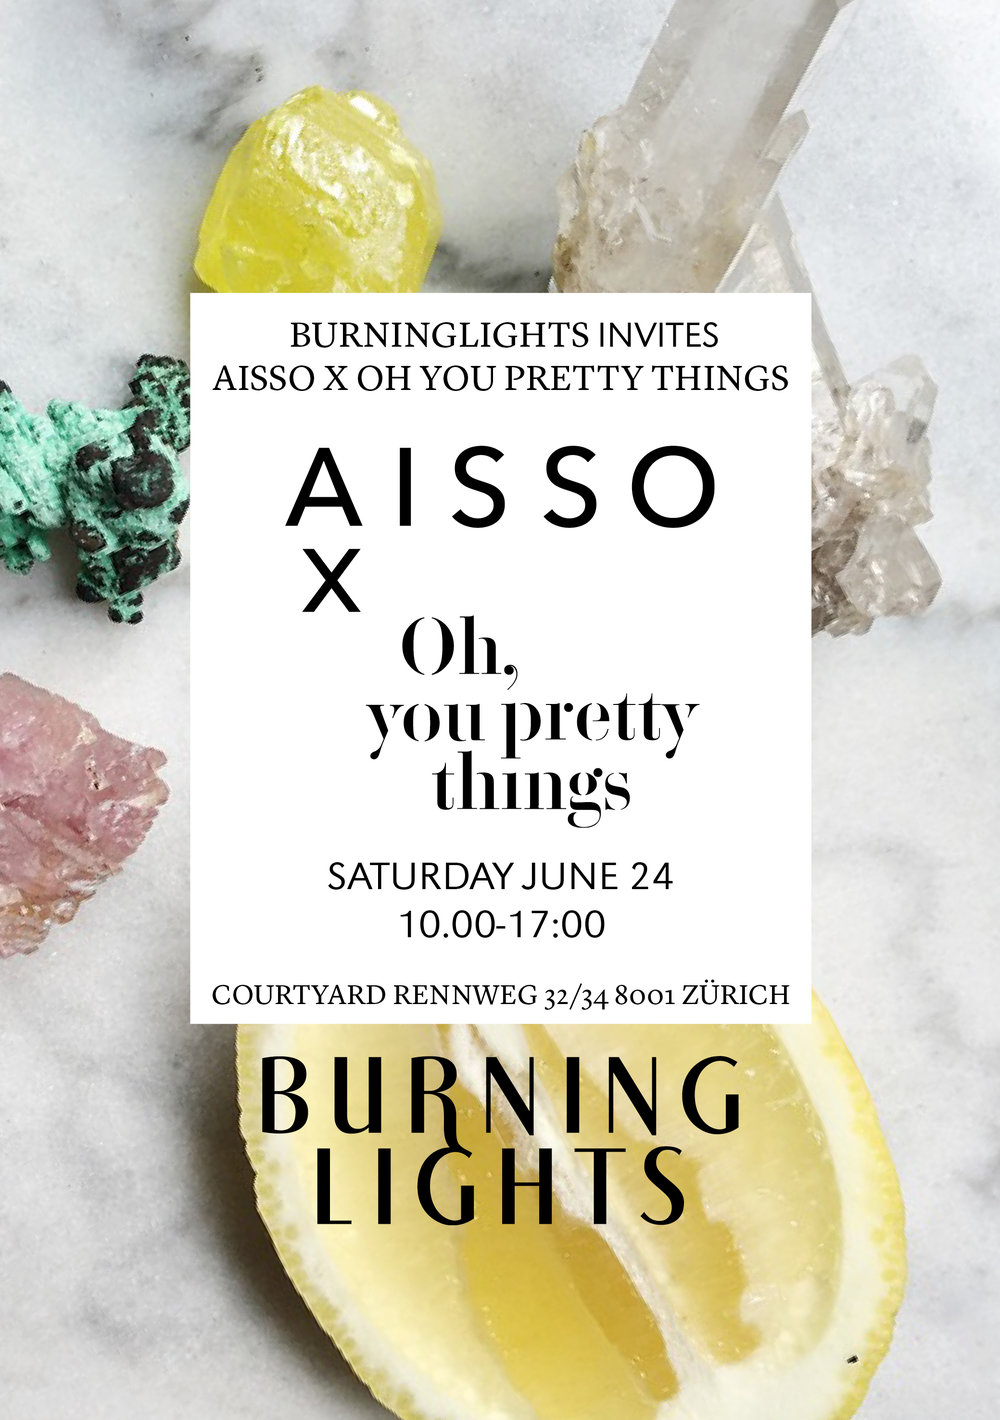 burninglights_aisso_ohyouprettythings